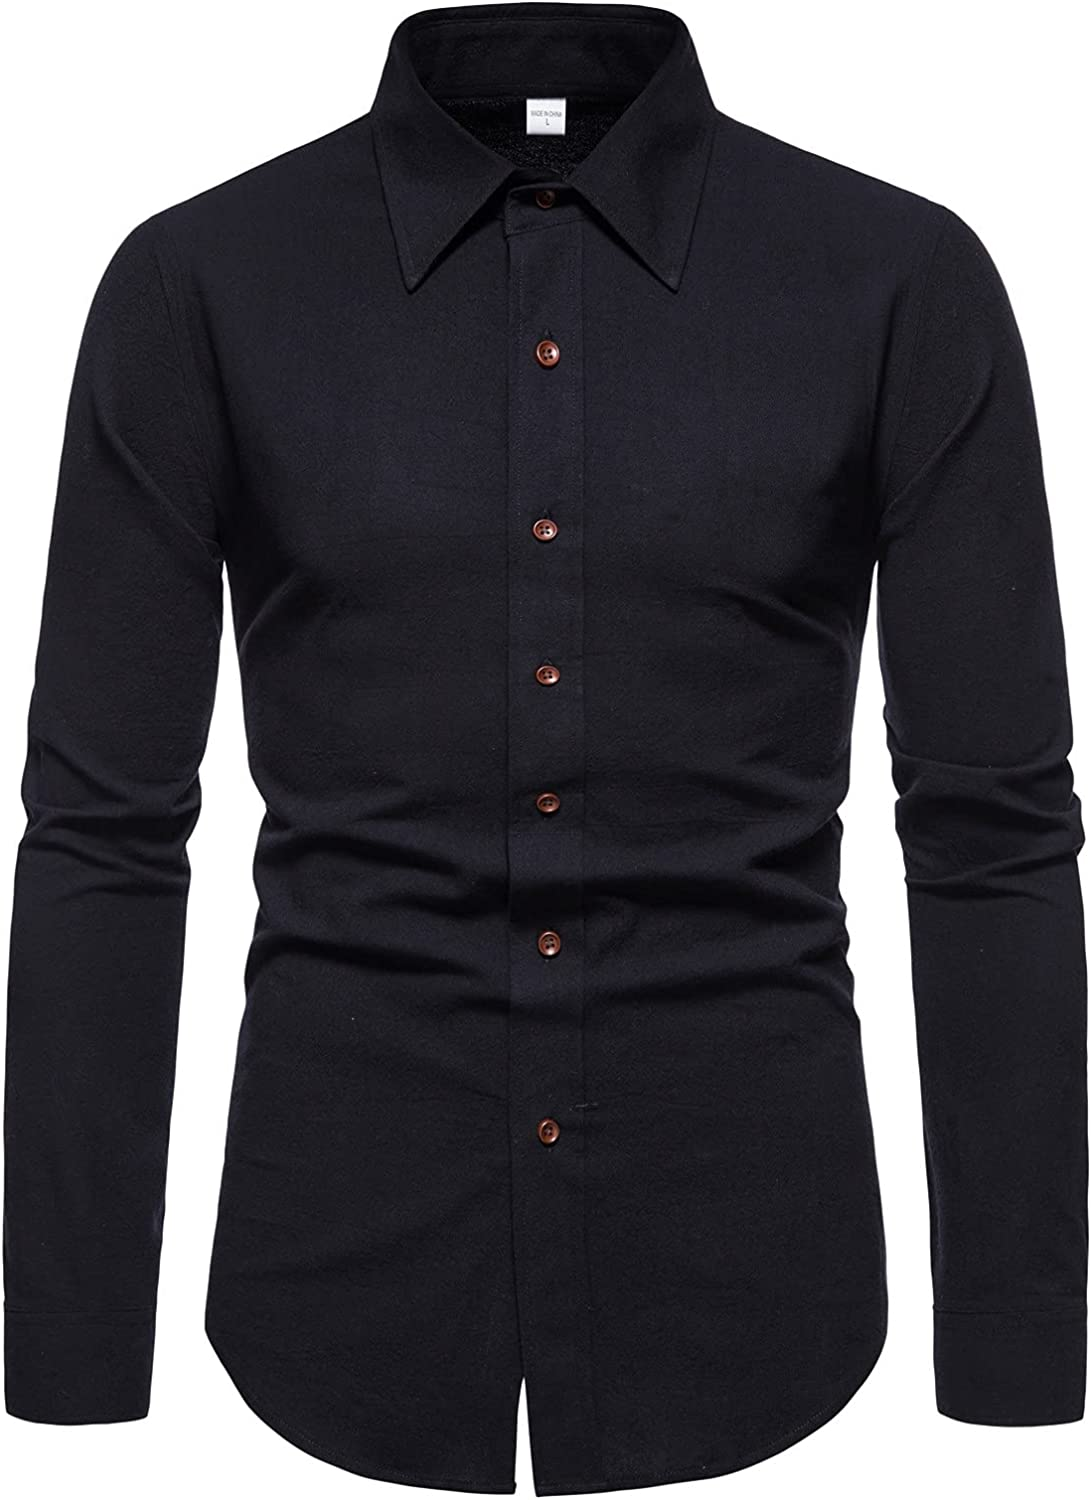 Mens Dress Shirts Long Sleeve Casual Slim Fit Button Turn-Down Collar Tops Lightweight Blouse for Party Prom